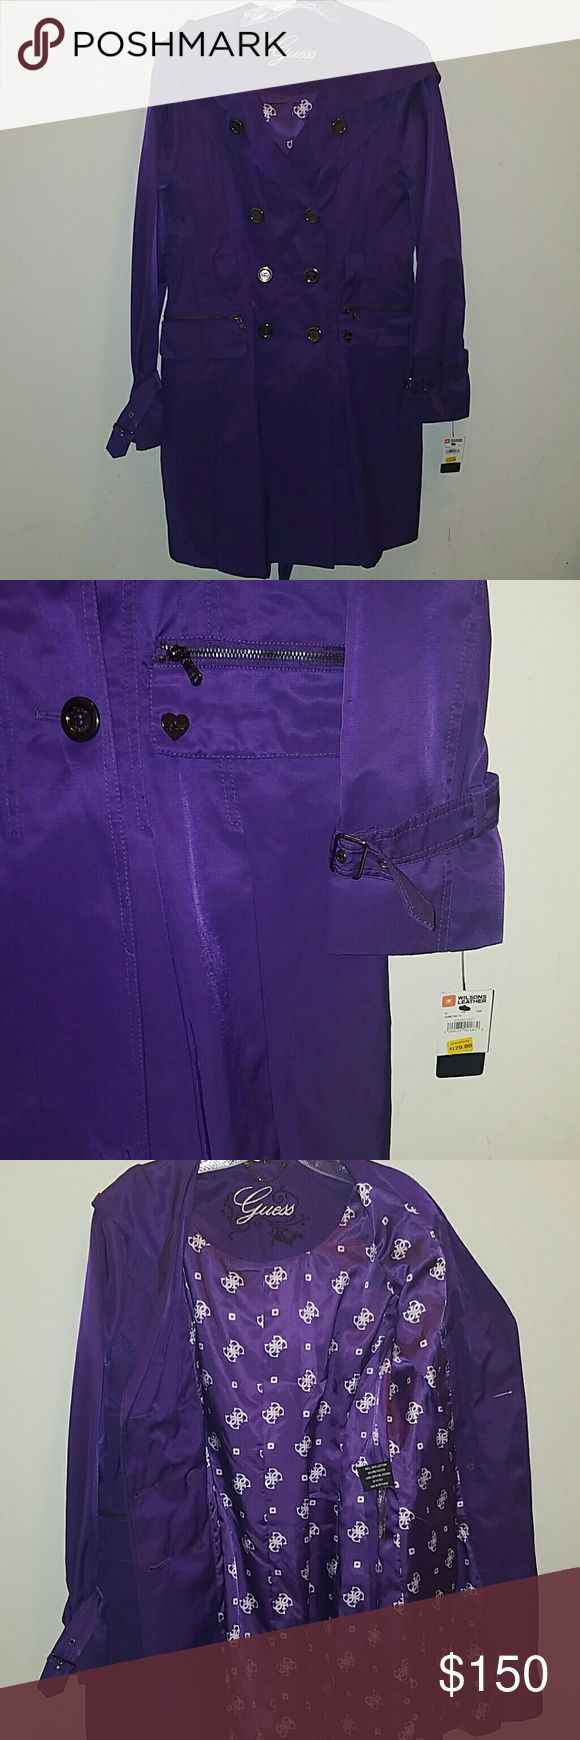 GUESS PURPLE TRENCH COAT Guess purple, trench coat, with hood New with tags and never worn Guess Jackets & Coats Trench Coats